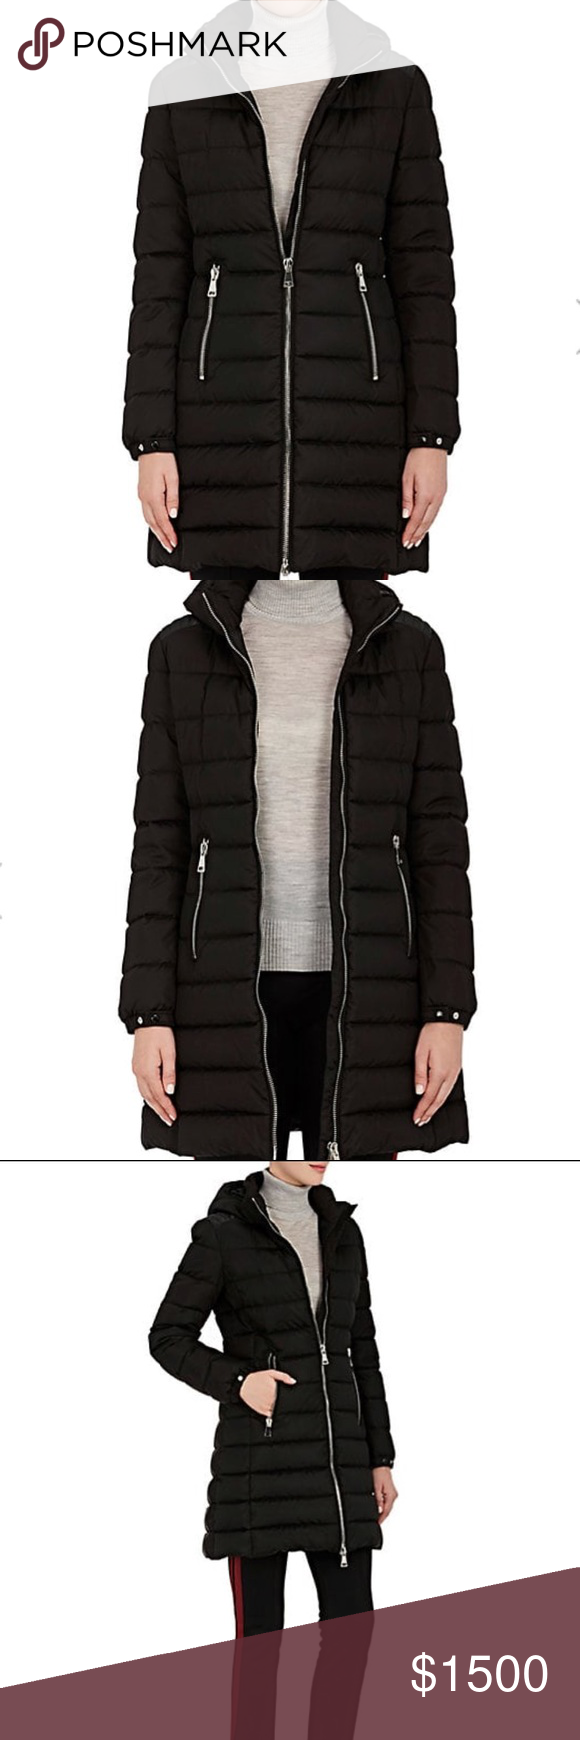 Brand new current season Moncler Orophin Coat in Black!!! Beautiful down coat with leather trim at the shoulder. New with tags!! Size 2 in Moncler.